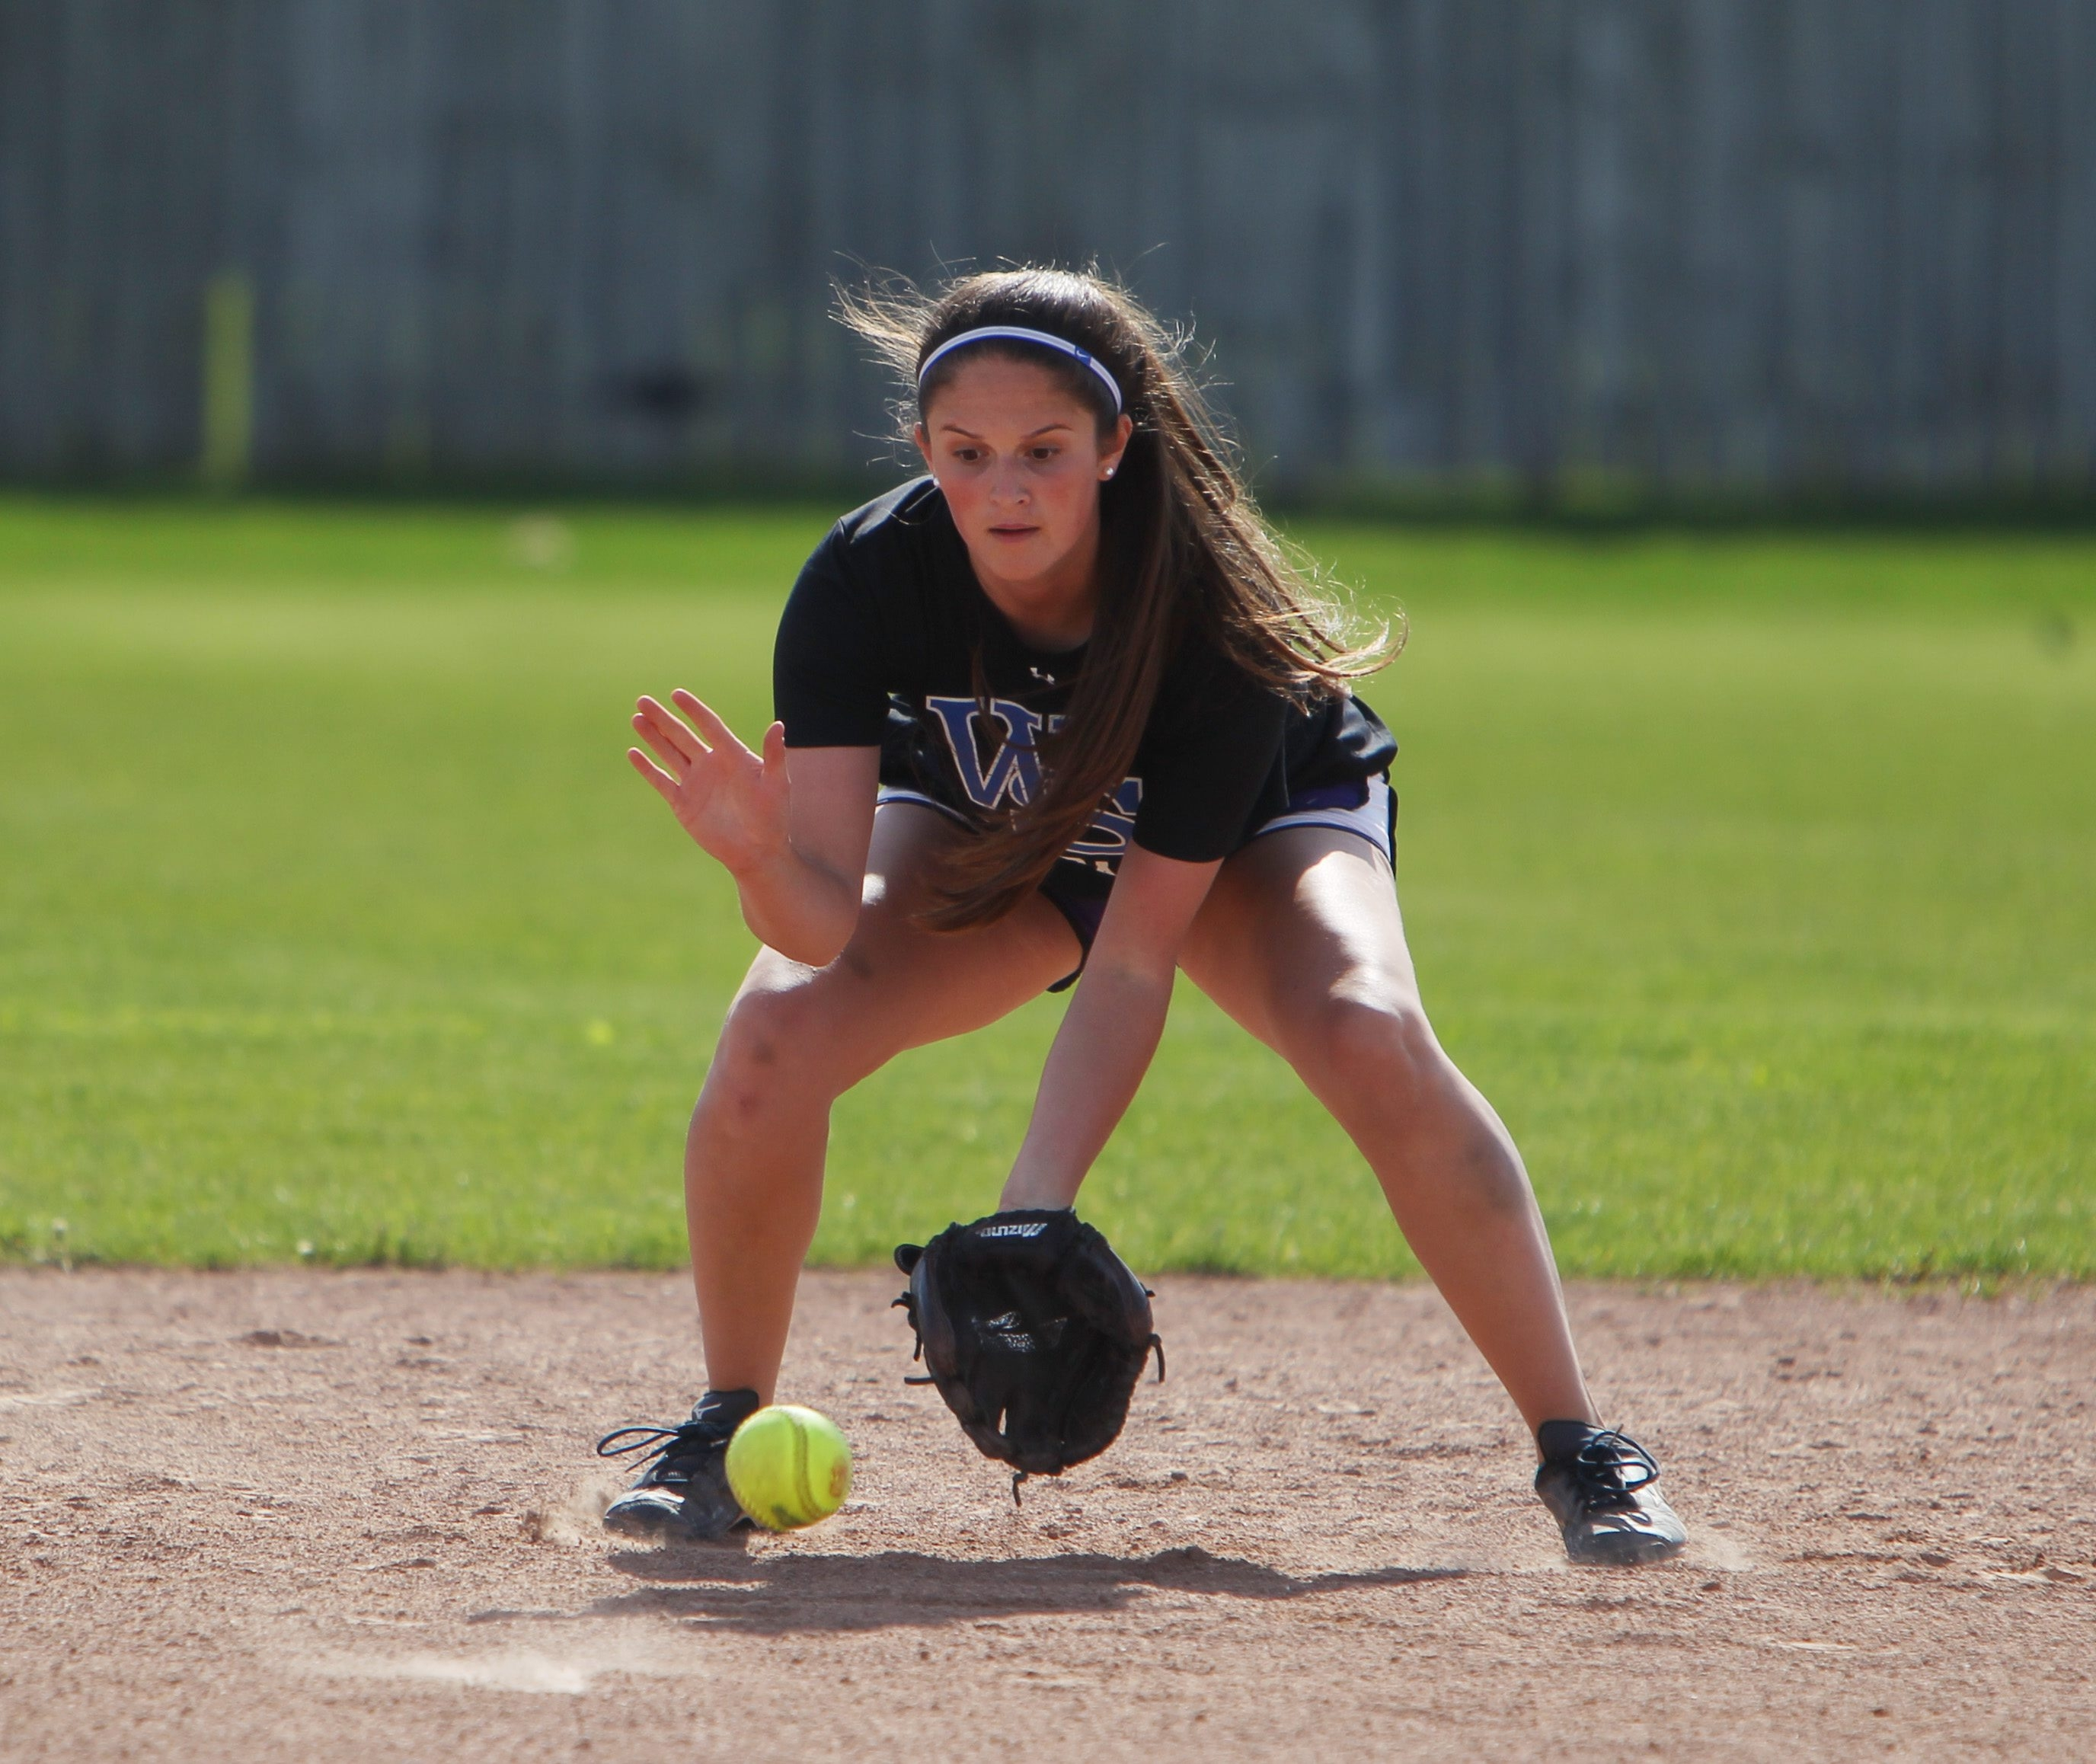 Shortstop Emily Martin, from Class A Williamsville South, is a first-team selection on the All-New York State softball team.